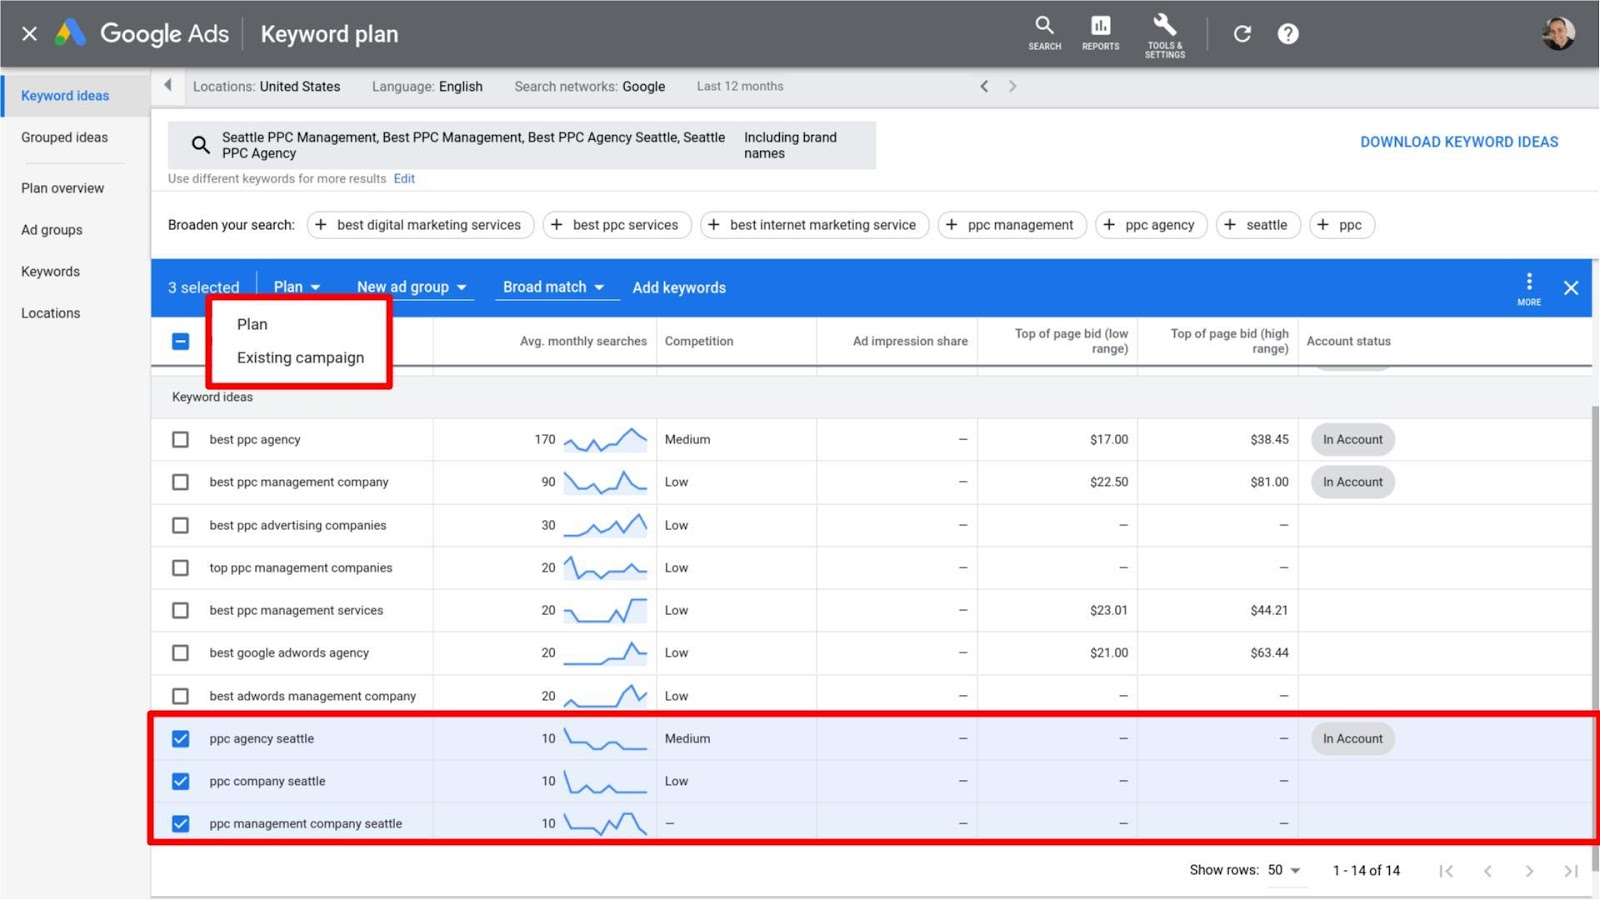 C:\Users\lenovo\Documents\ACT Marketing\Downloads from Slides\Copy of M146 - Keyword Planner Tutorial.jpg